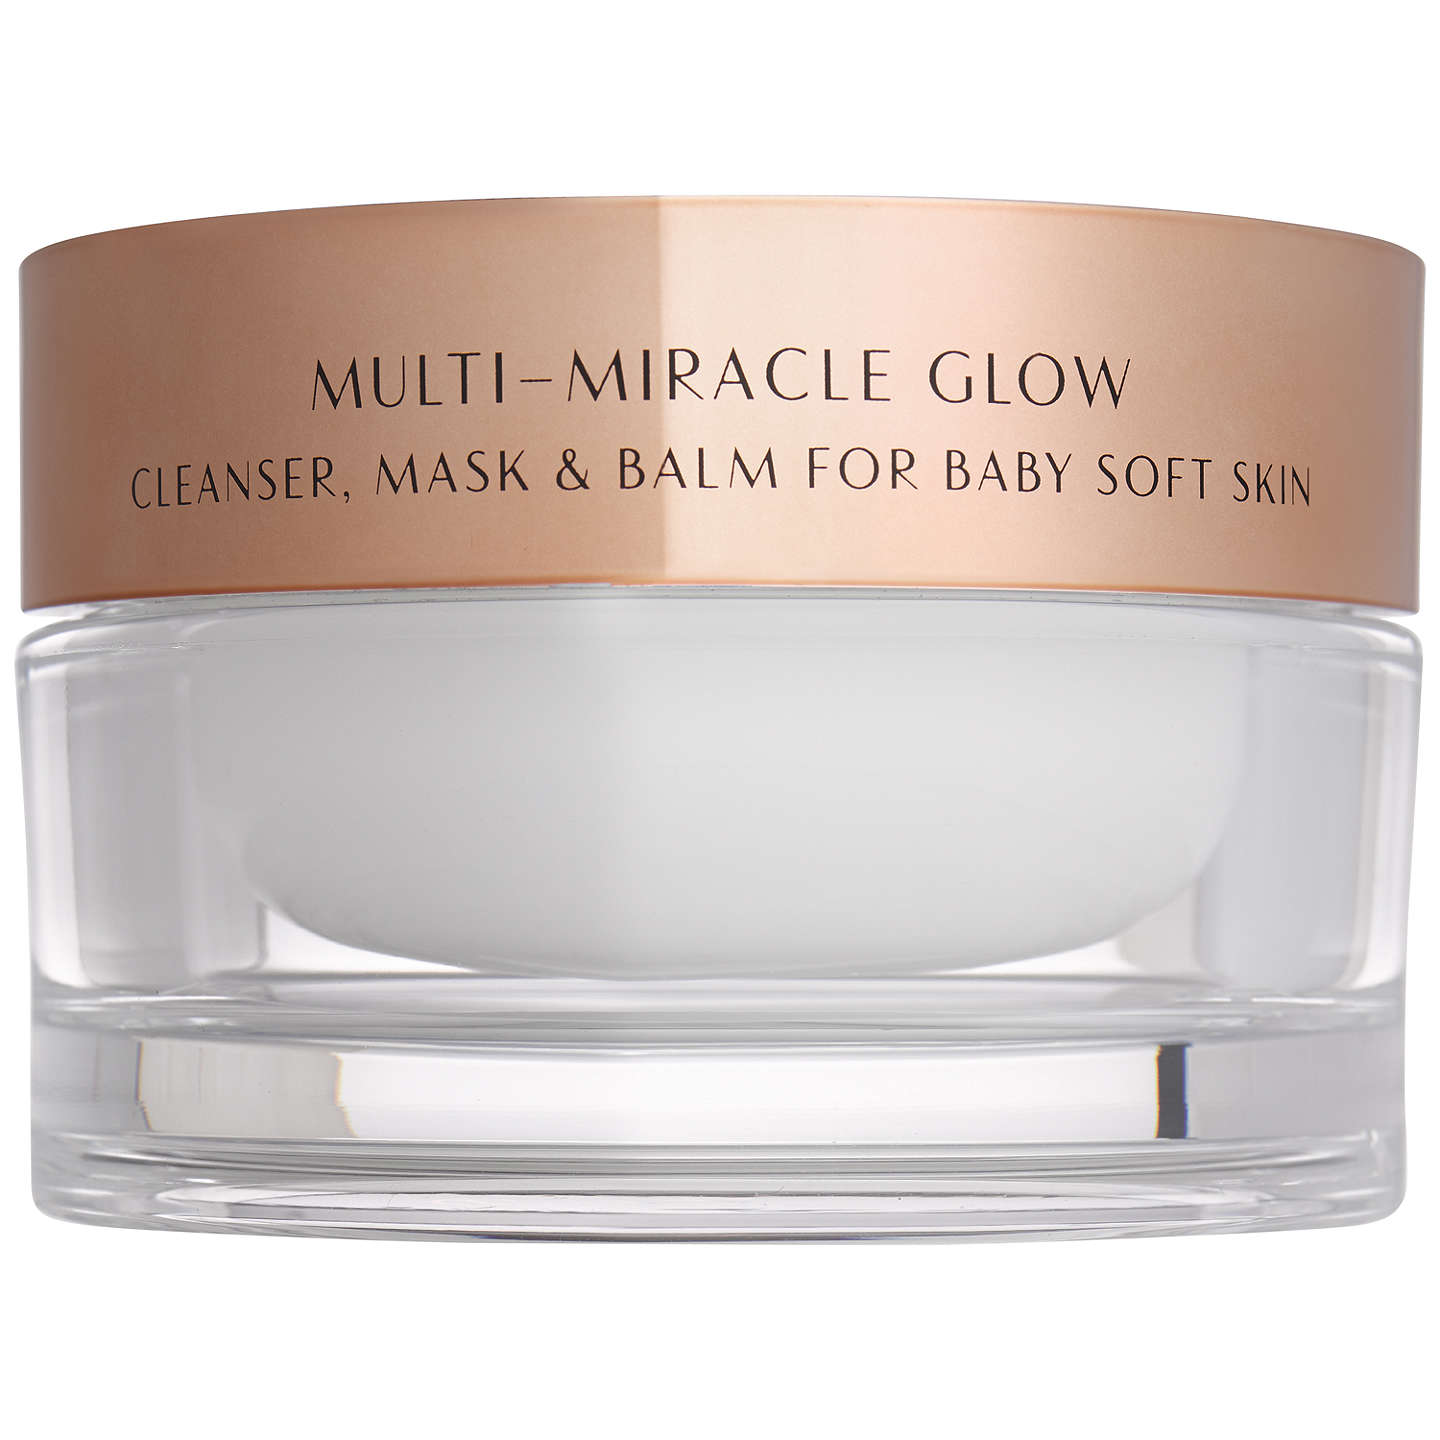 BuyCharlotte Tilbury Multi-Miracle Glow Cleanser, Mask & Balm, 100ml Online at johnlewis.com